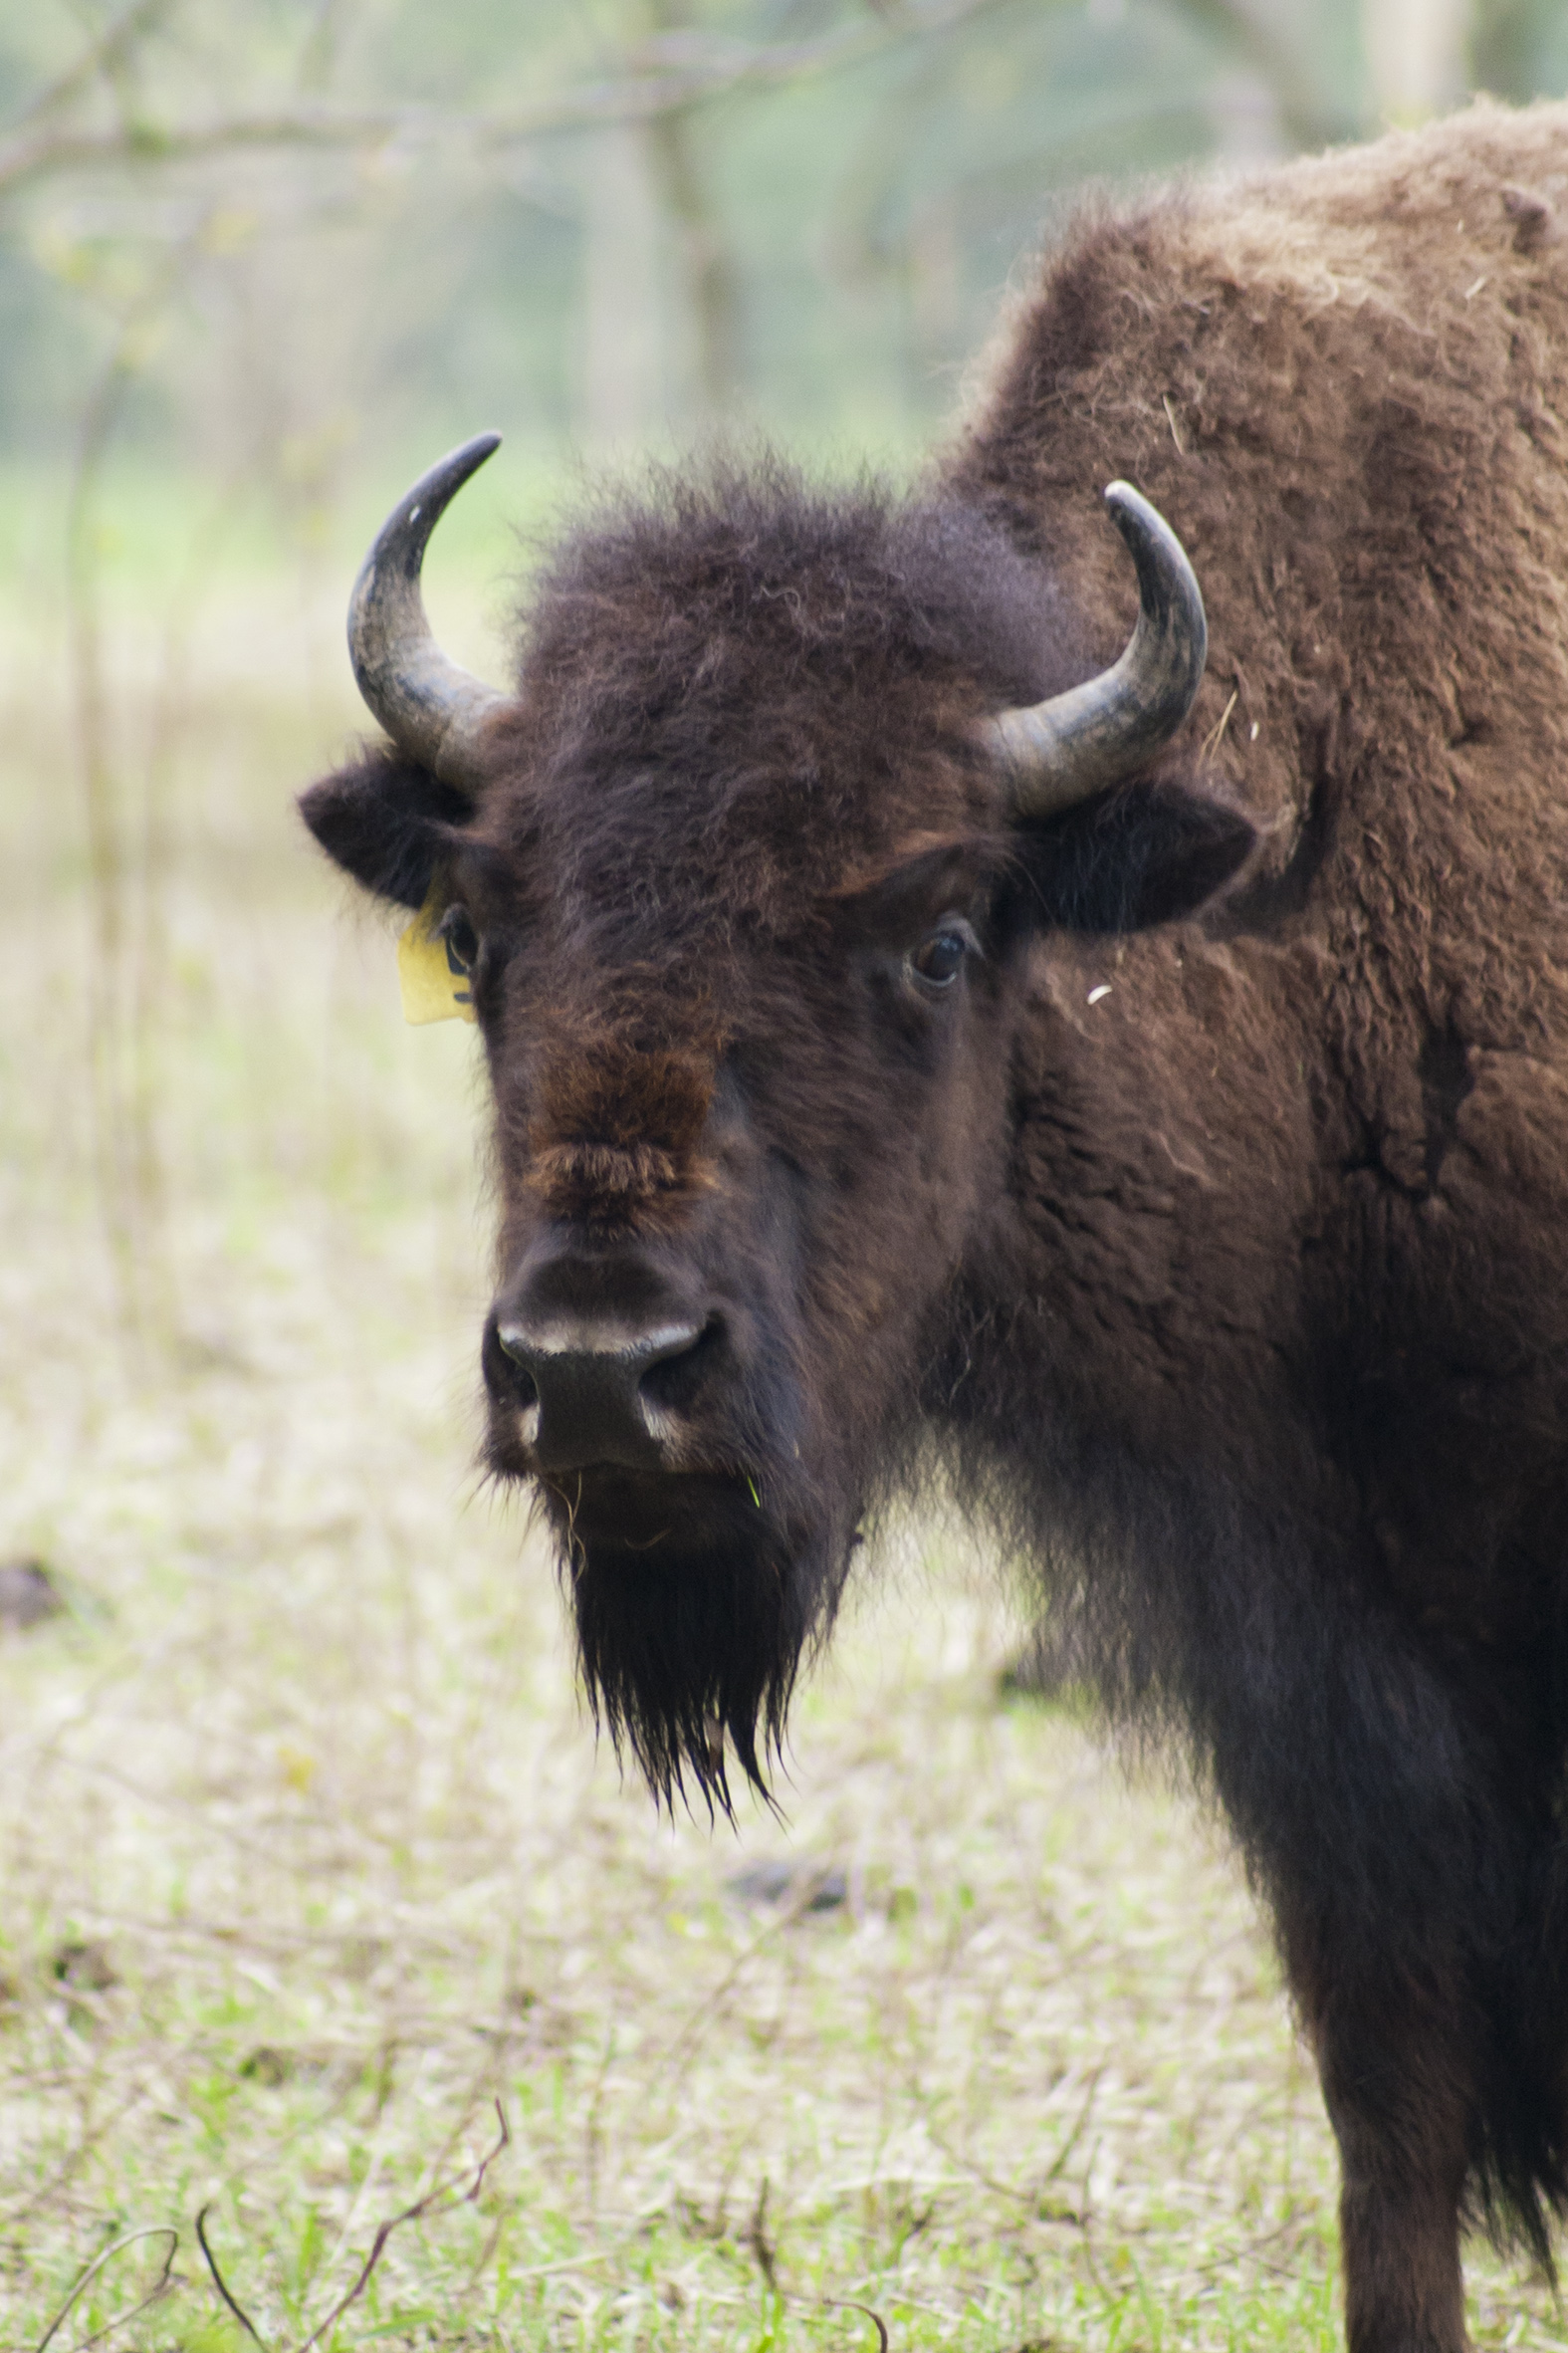 singles in bison Coverage includes buffalo bisons tickets, scores, stats, news and more.